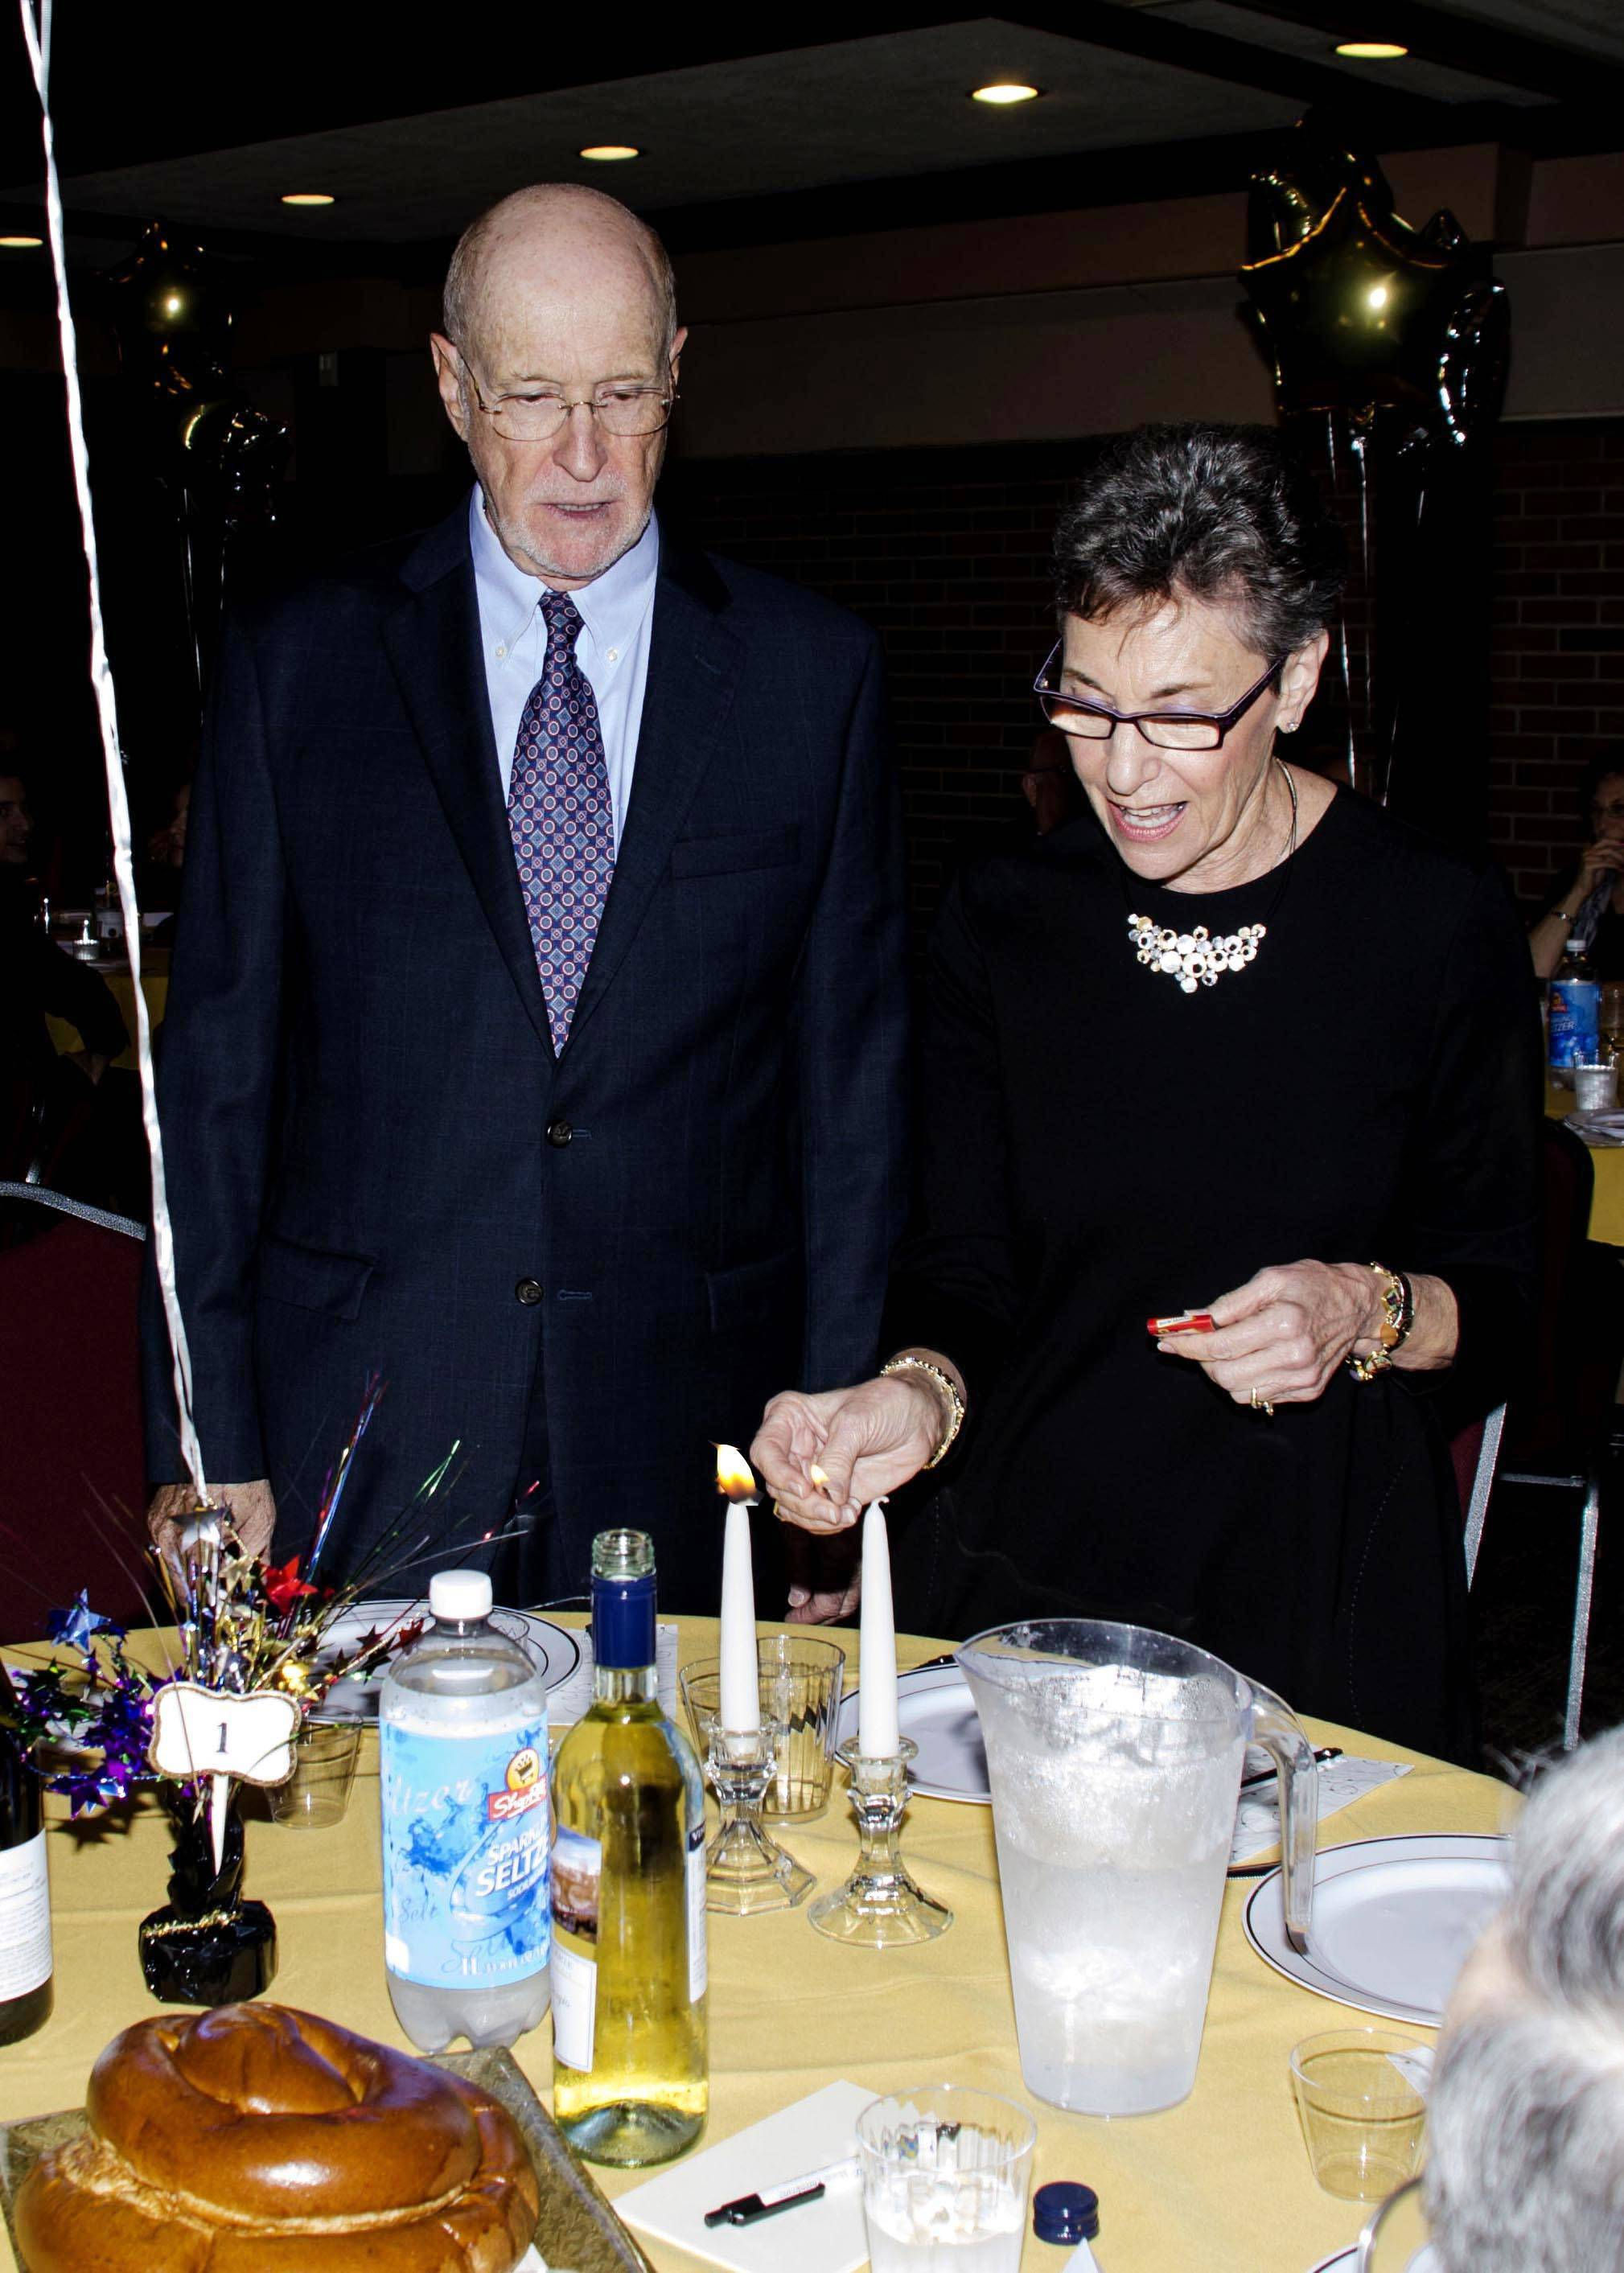 62d01dfd99d20d320256_Rabbi_Sheila_candles.jpg